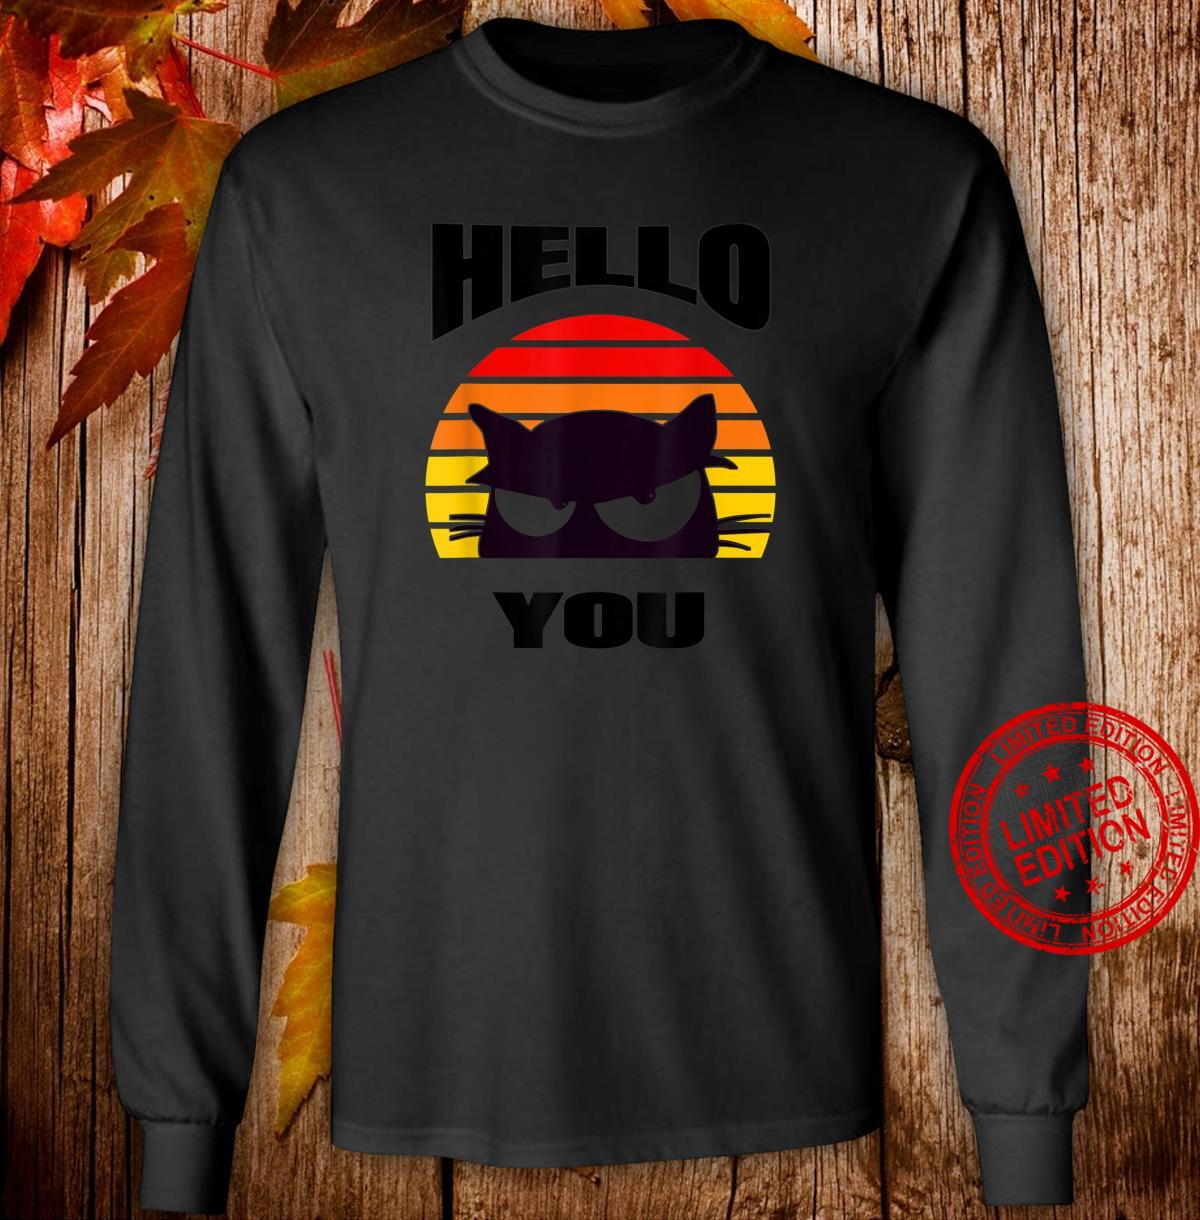 Hello You. Cute black cat design peeping out at you. Shirt long sleeved